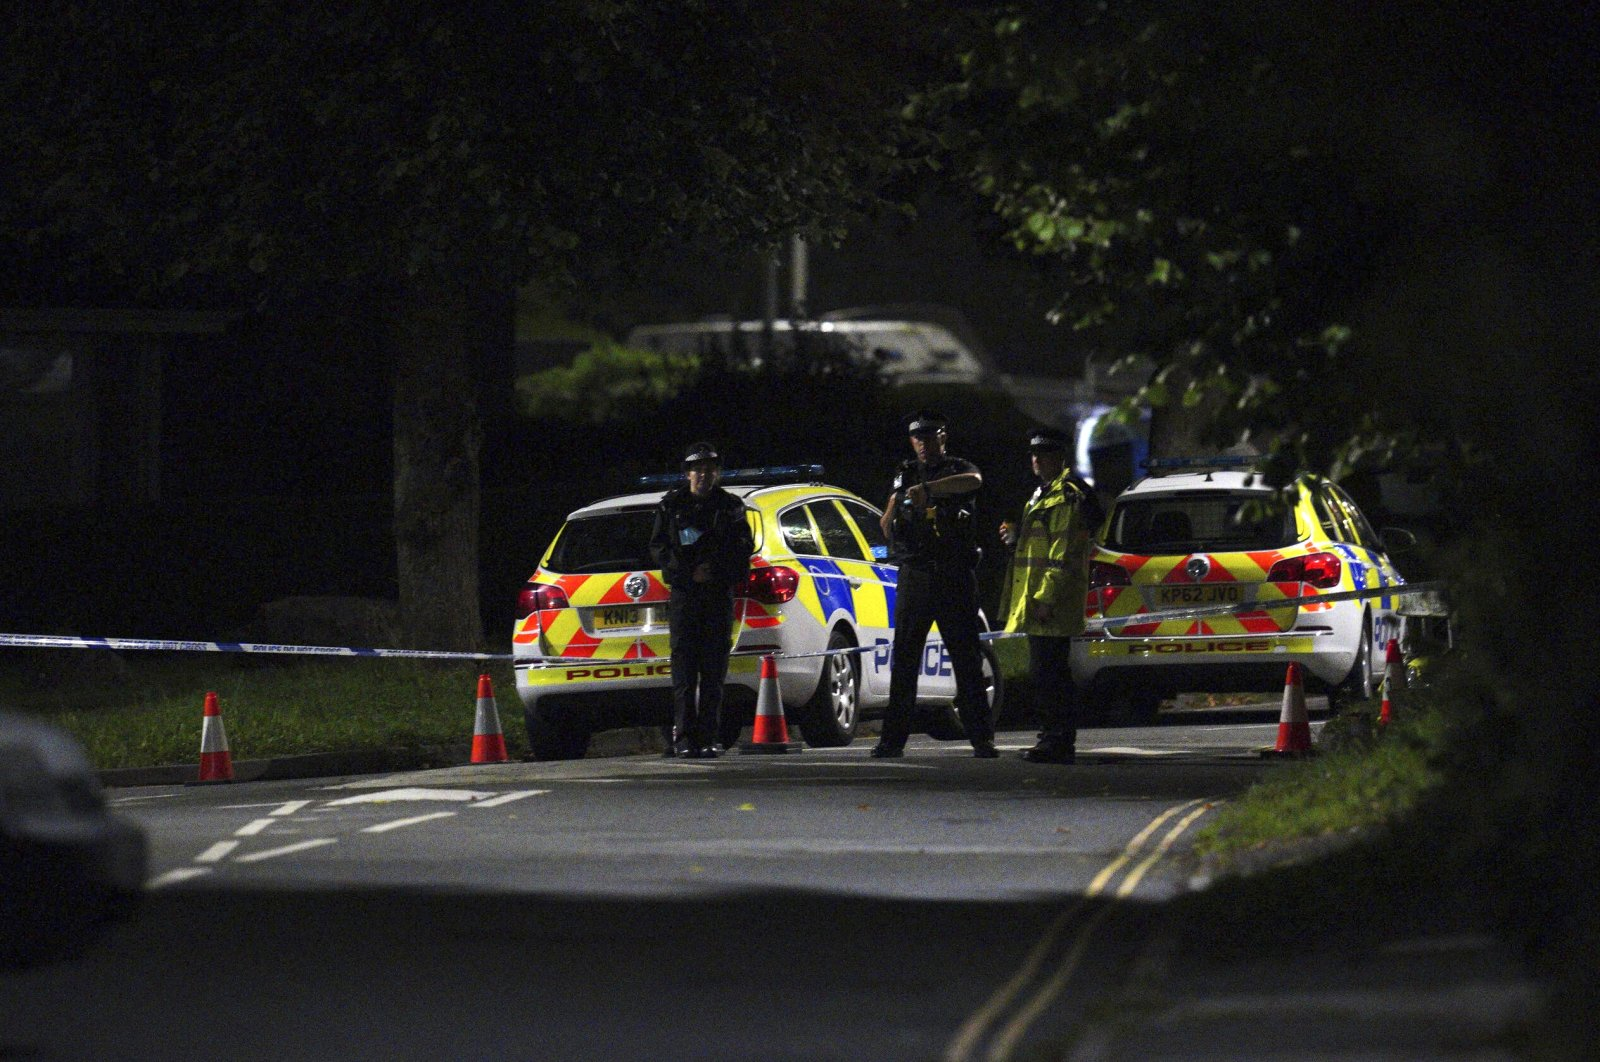 Emergency services are seen near the scene of the shooting on Biddick Drive, in the Keyham area of Plymouth, southwest England, Aug. 12, 2021. (AP Photo)